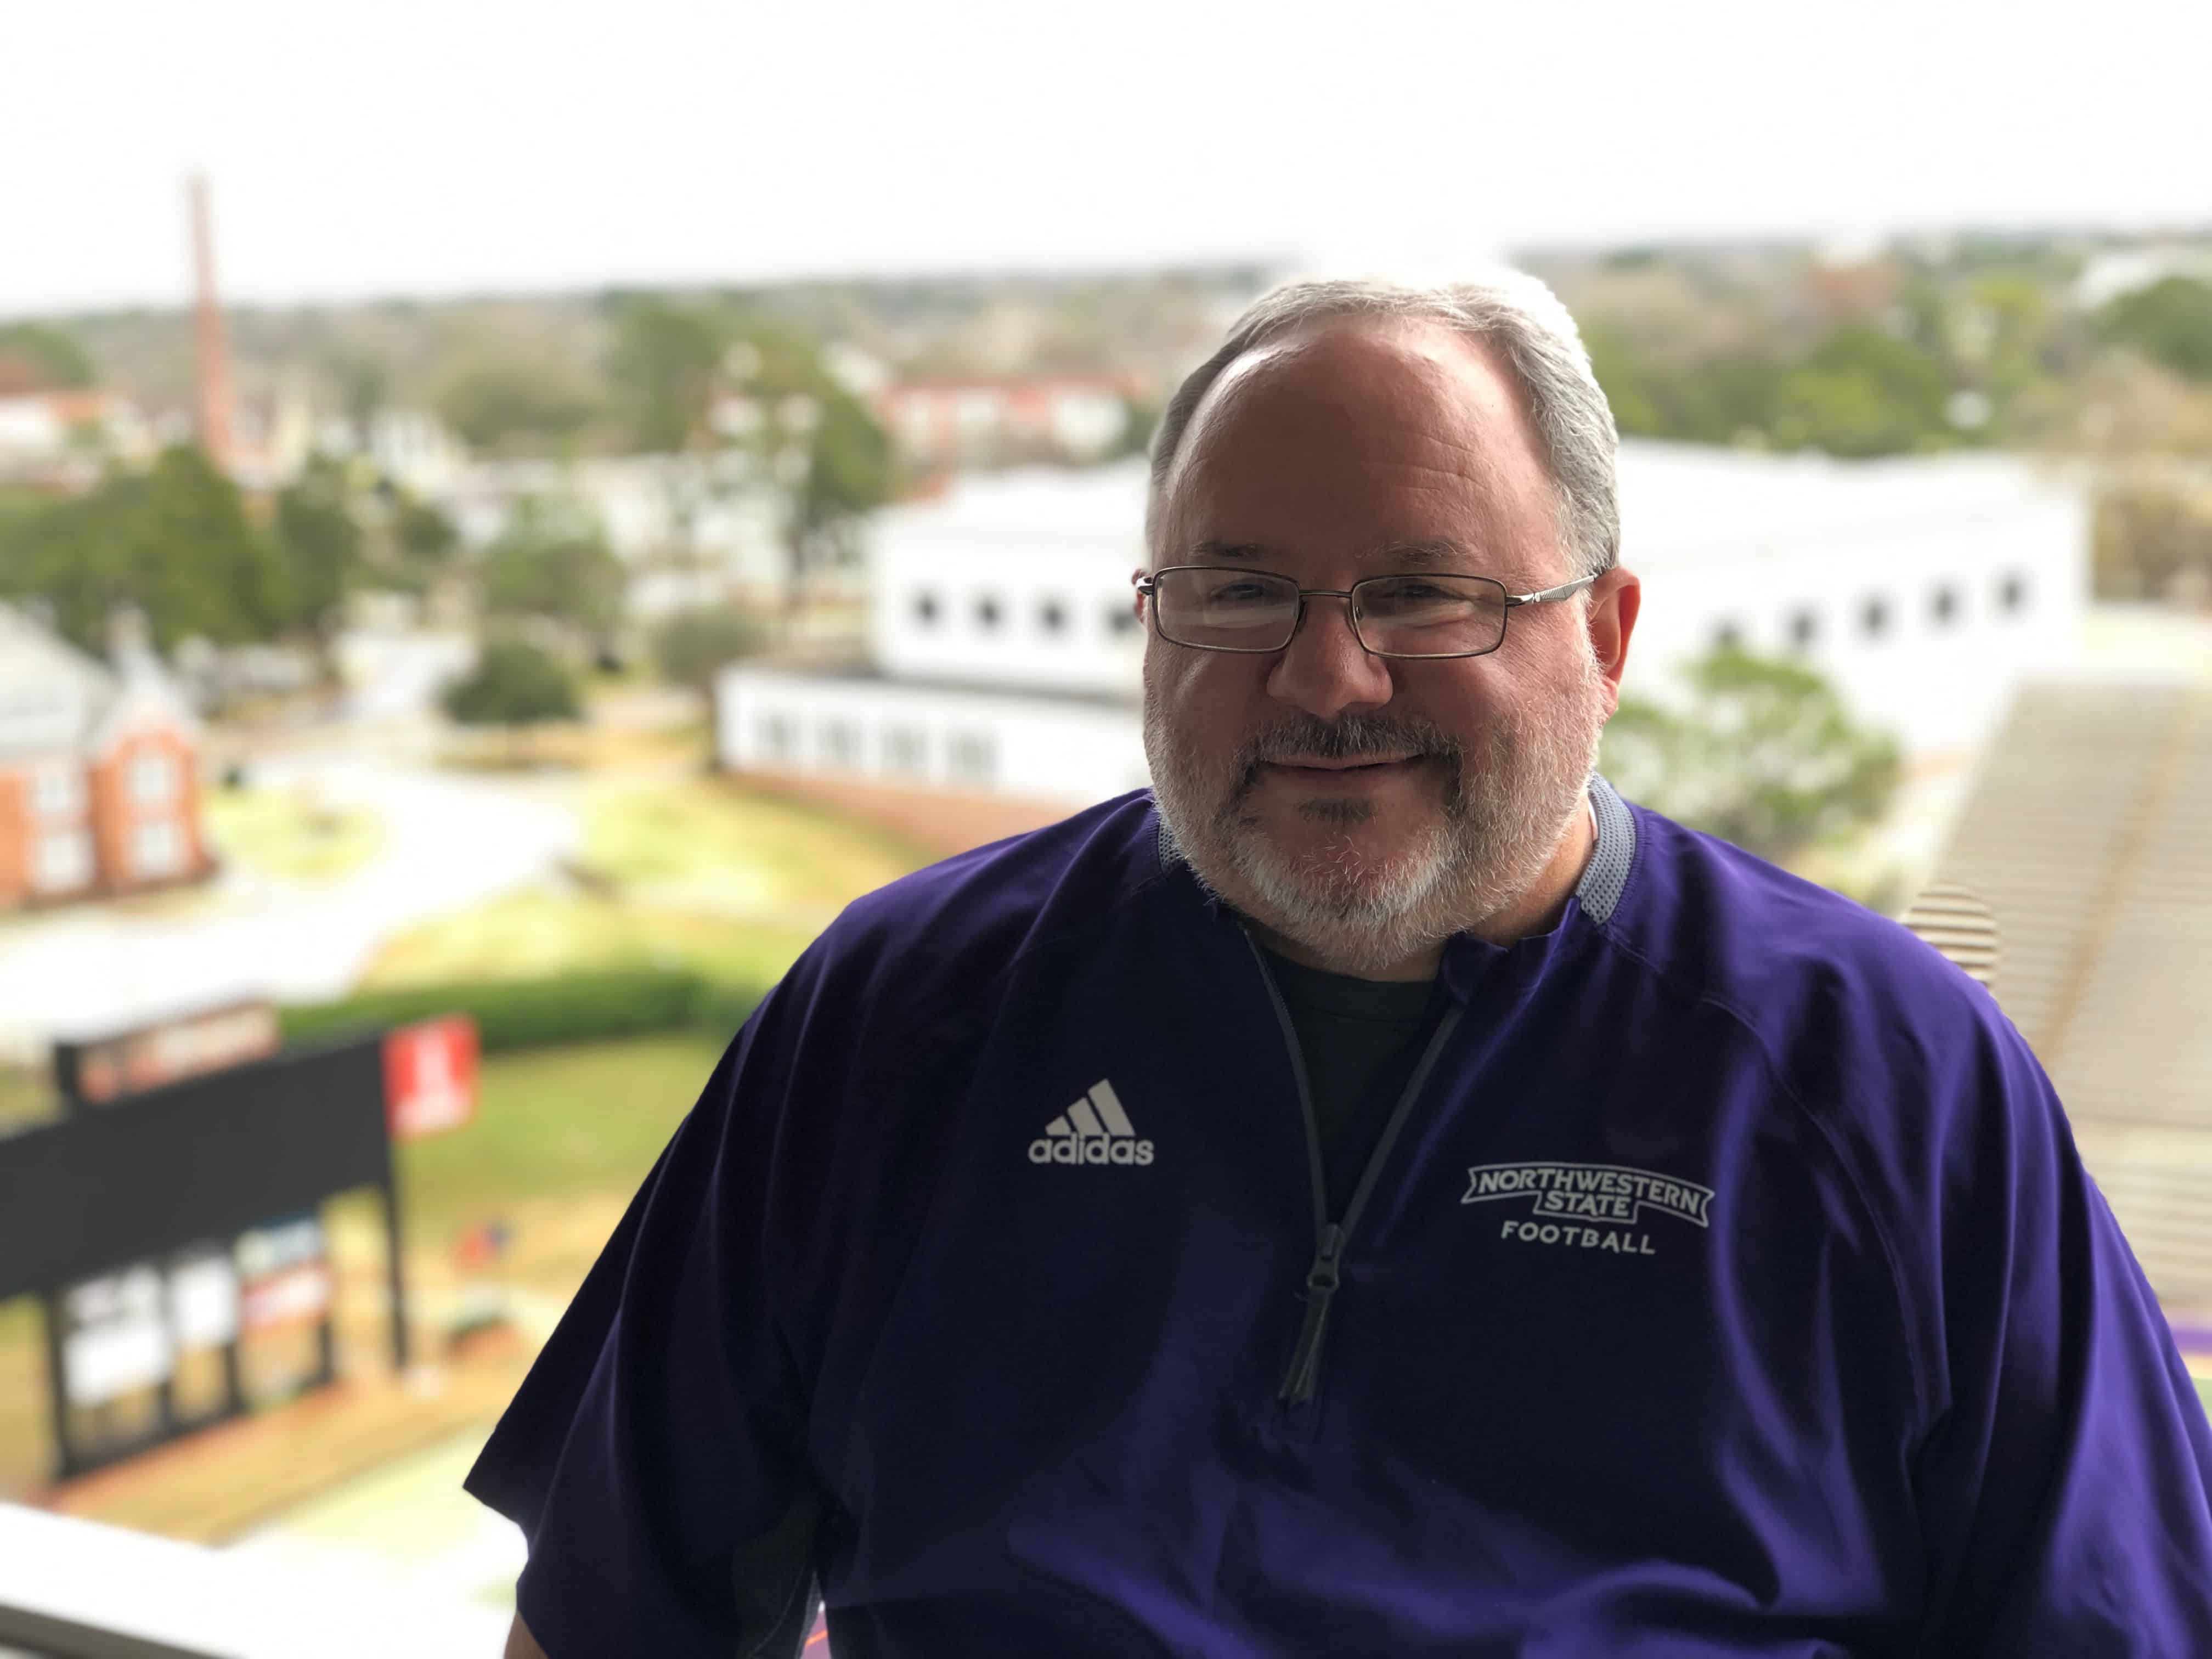 Northwestern State Football Coach